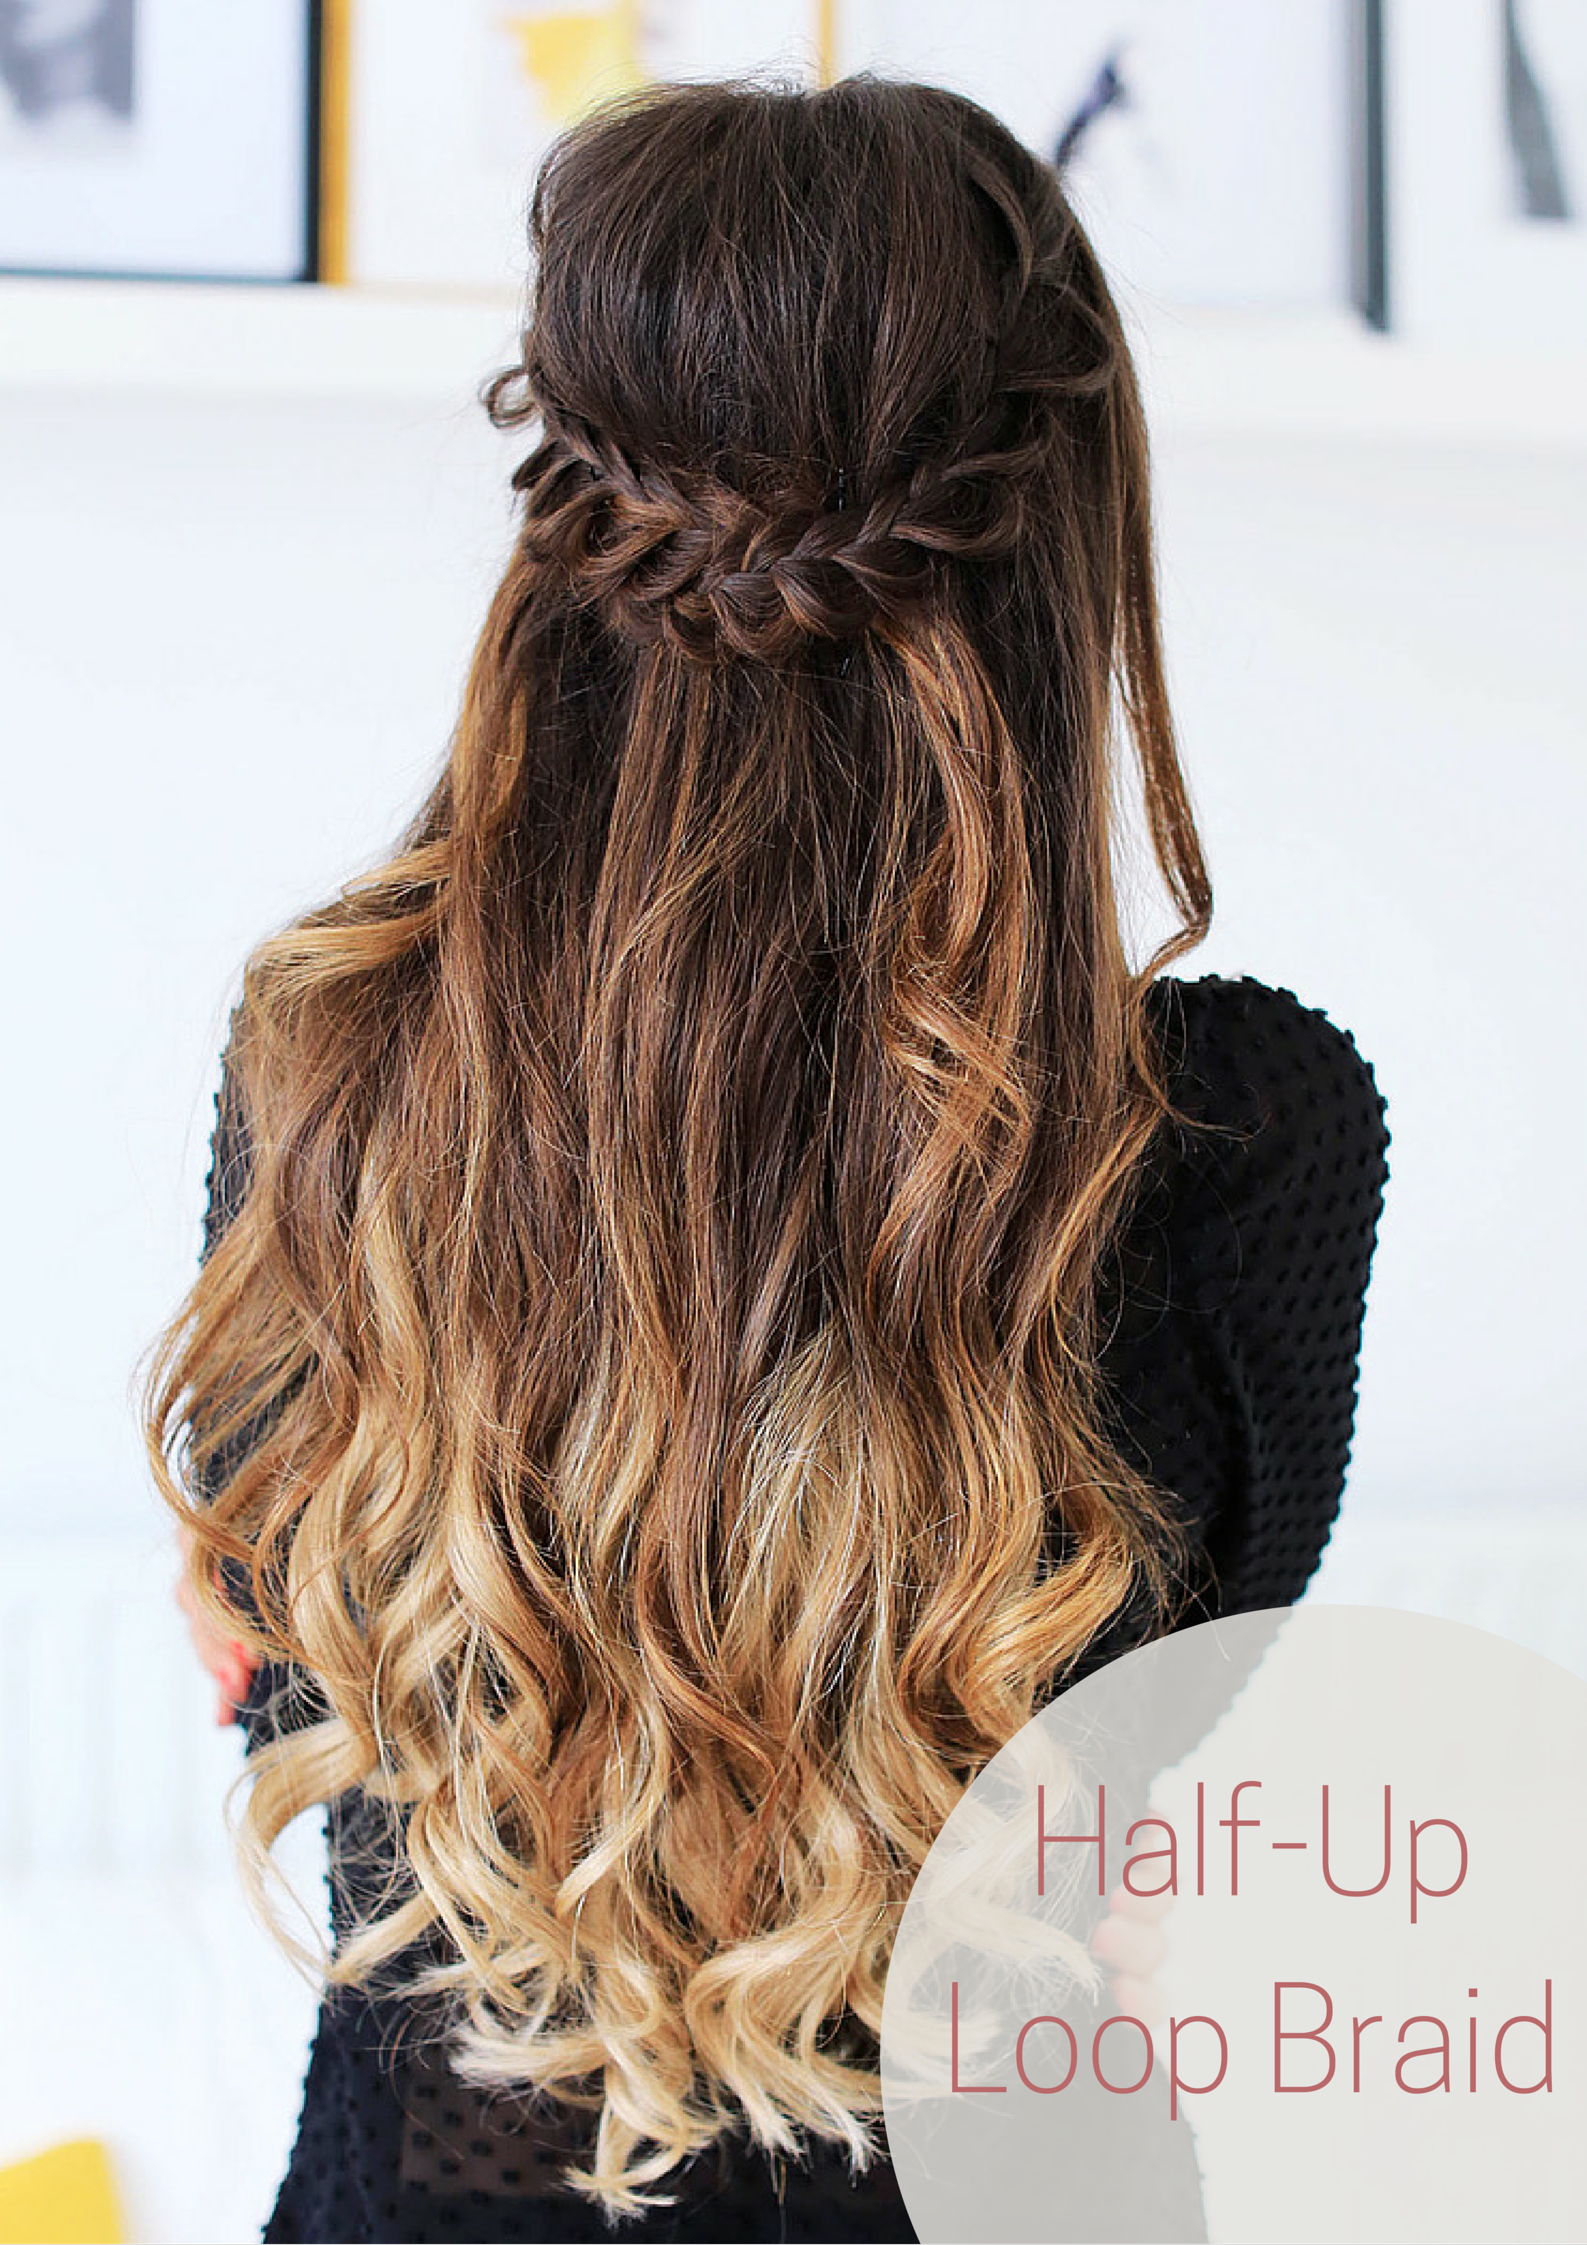 Half Up Loop Braid Created With Ombre Blonde Luxy Hair Extensions By The Gorgeous Mimiikonn Love This Simple Elegant Ever Hair Styles Luxy Hair Hair Tutorial